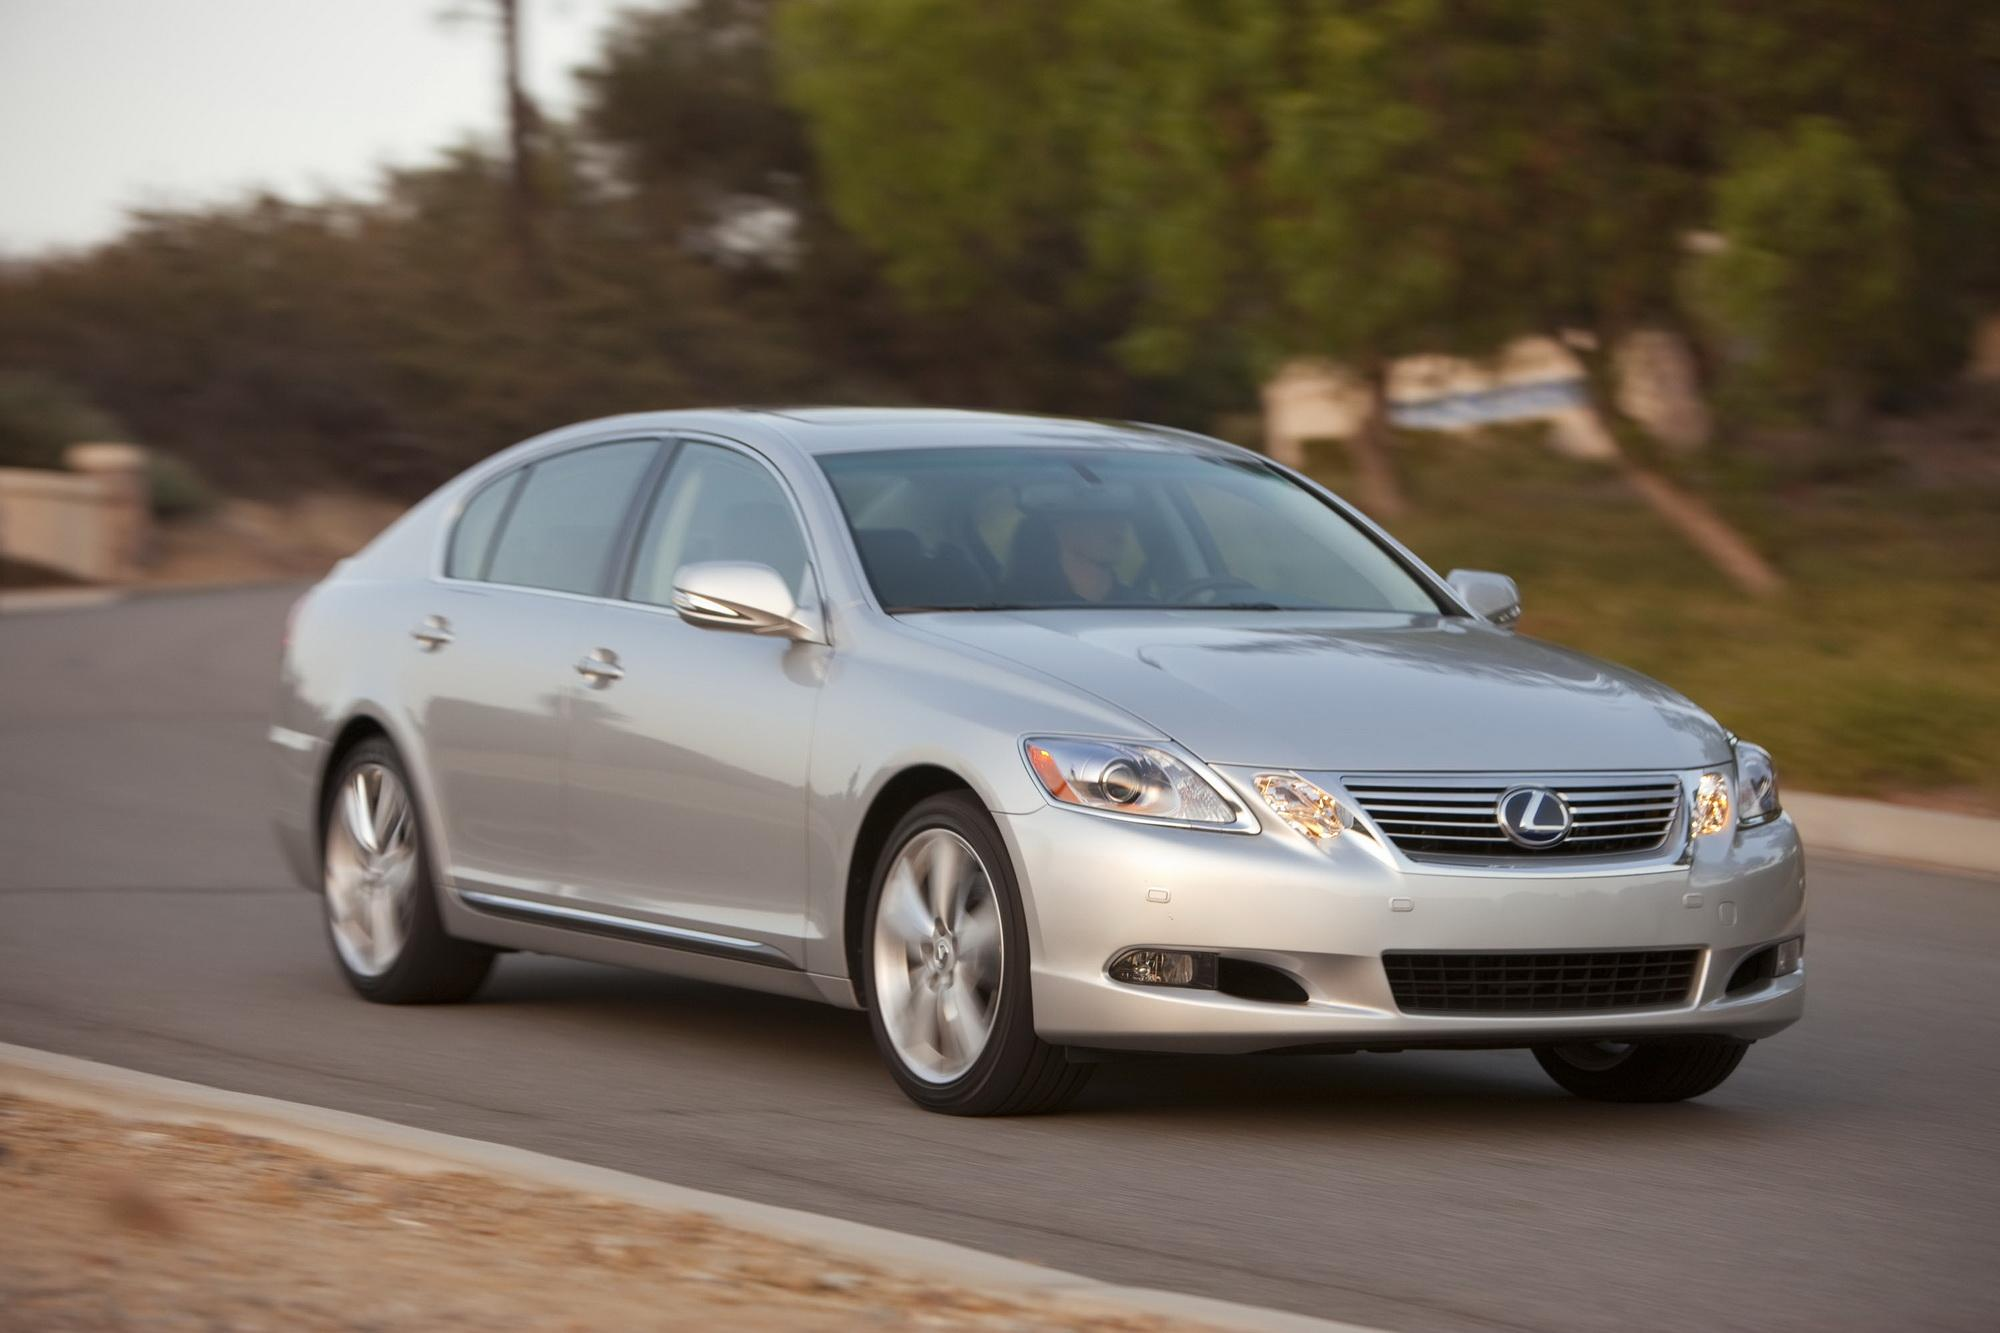 2010 lexus gs 450h review gallery top speed. Black Bedroom Furniture Sets. Home Design Ideas